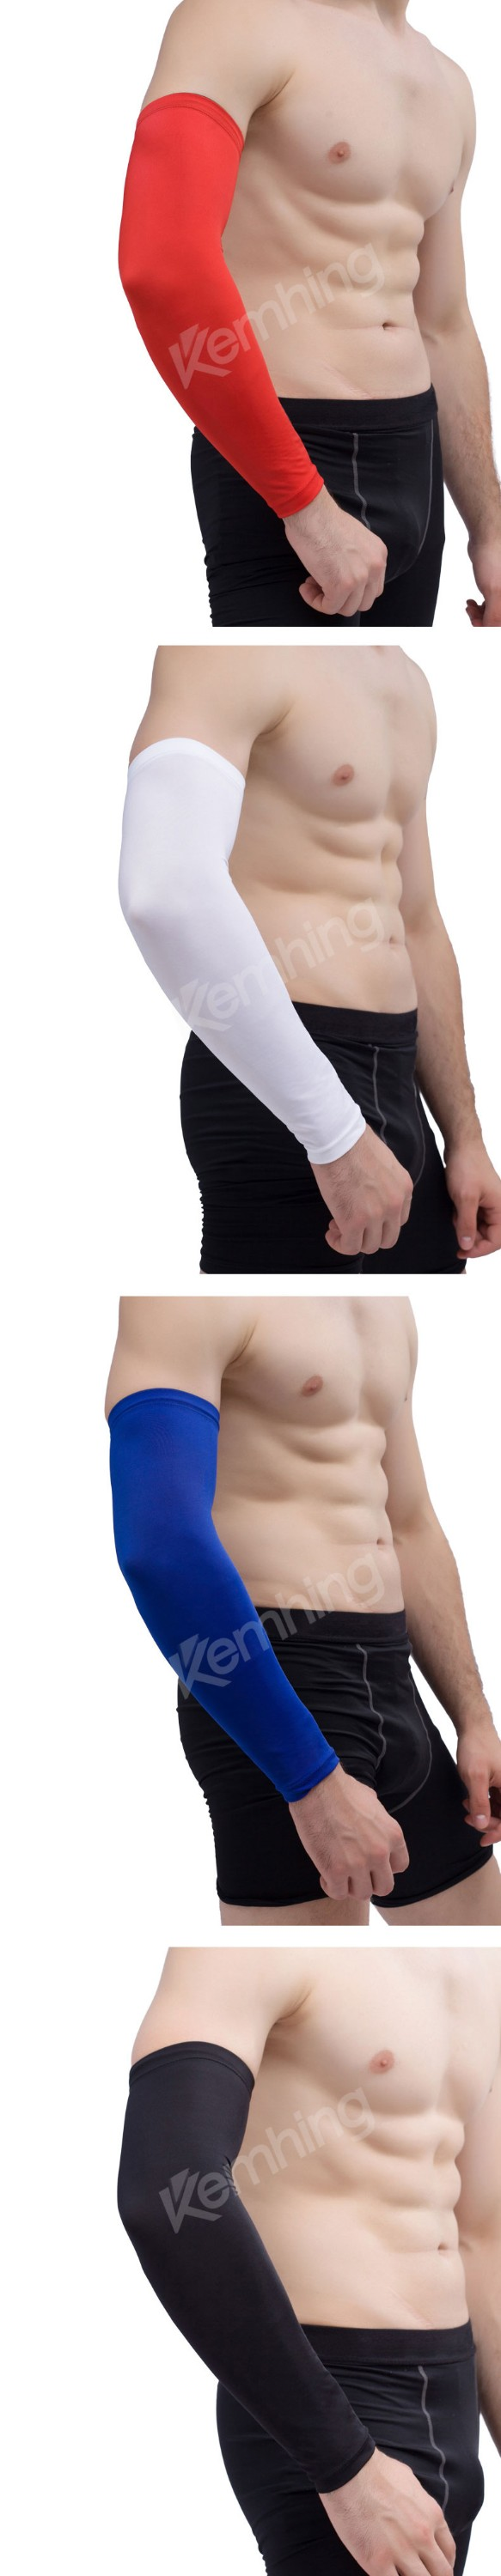 Custom compression sleeve Sports Black Arm Sleeves Cycling Basketball UV protector arm sleeve compression